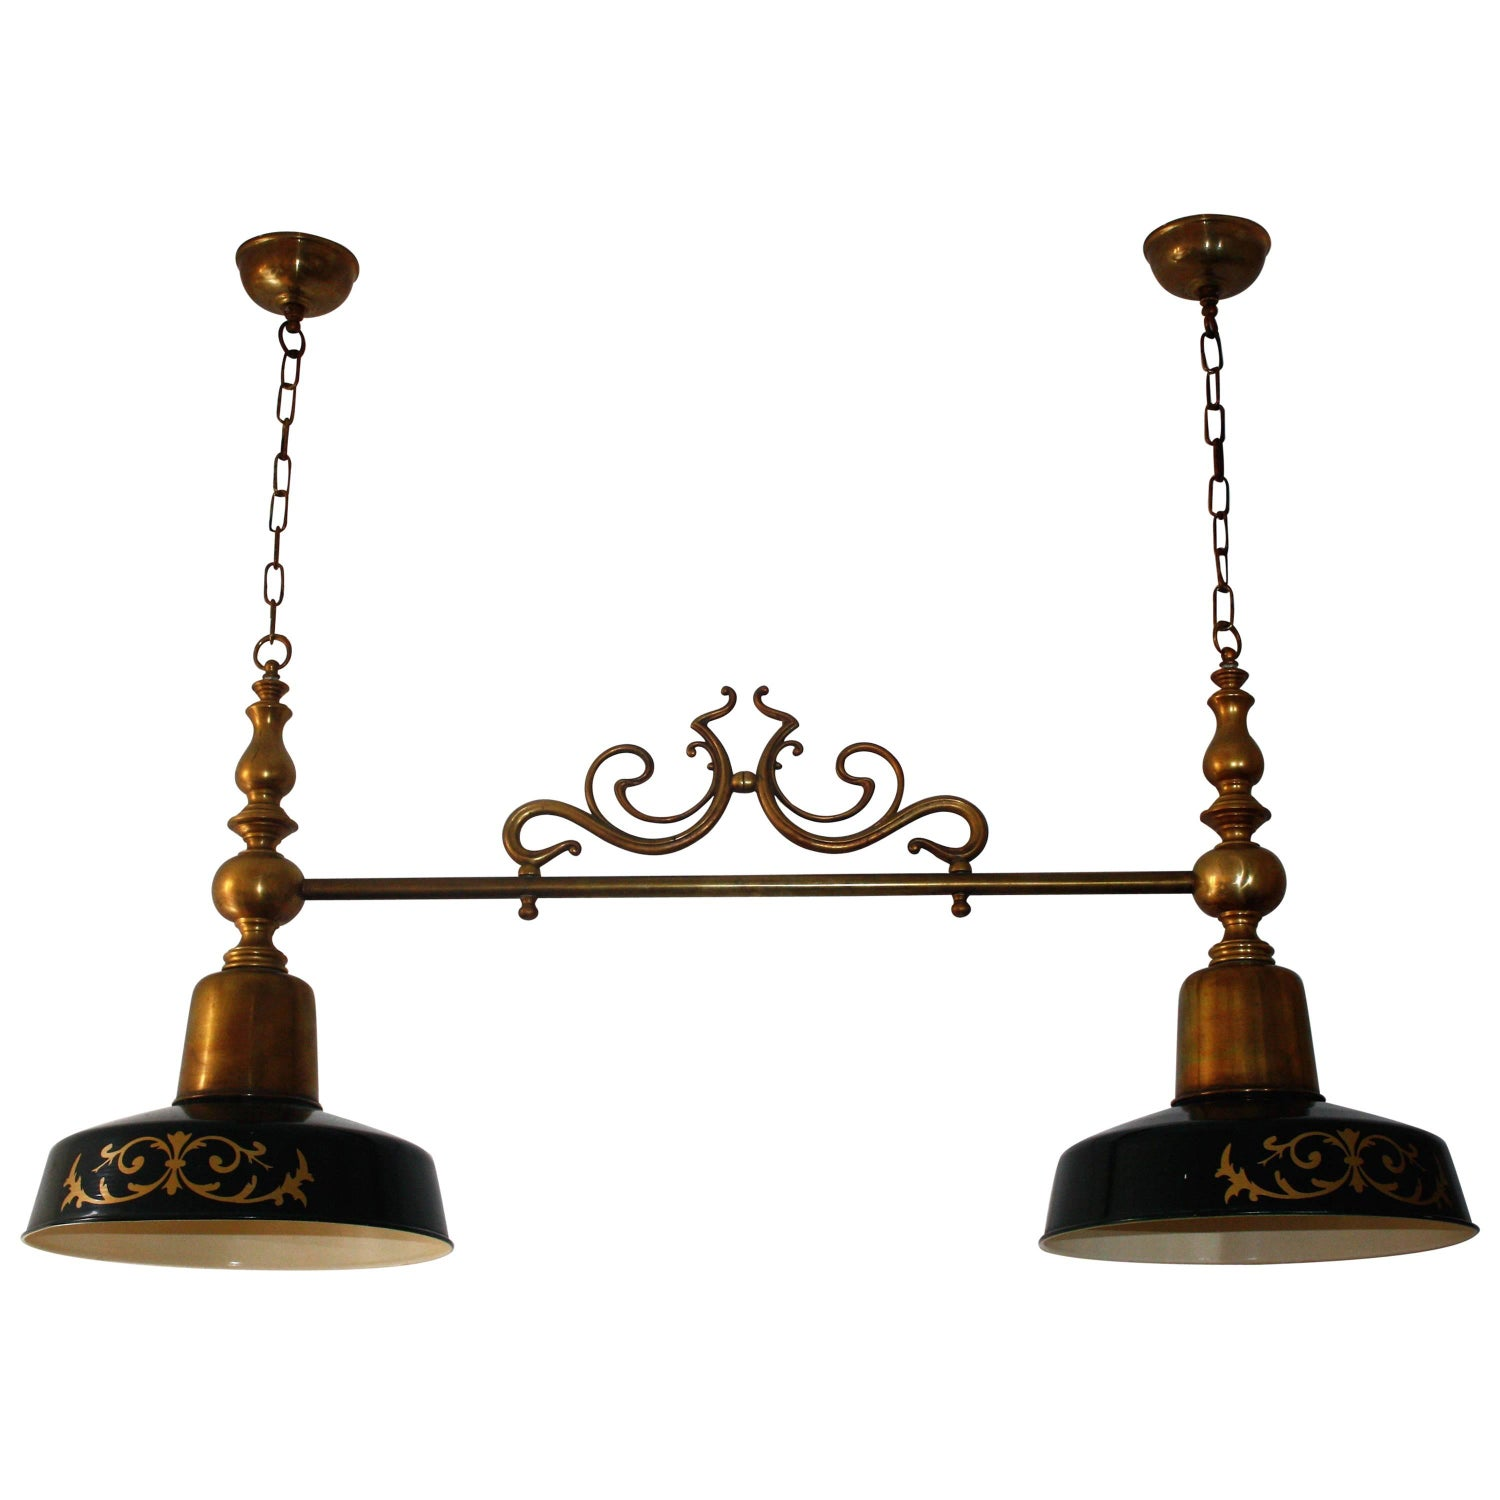 Antique billiard snooker or pool table light at 1stdibs extra large billiard snooker poker or kitchen island chandelier brass lamp greentooth Gallery